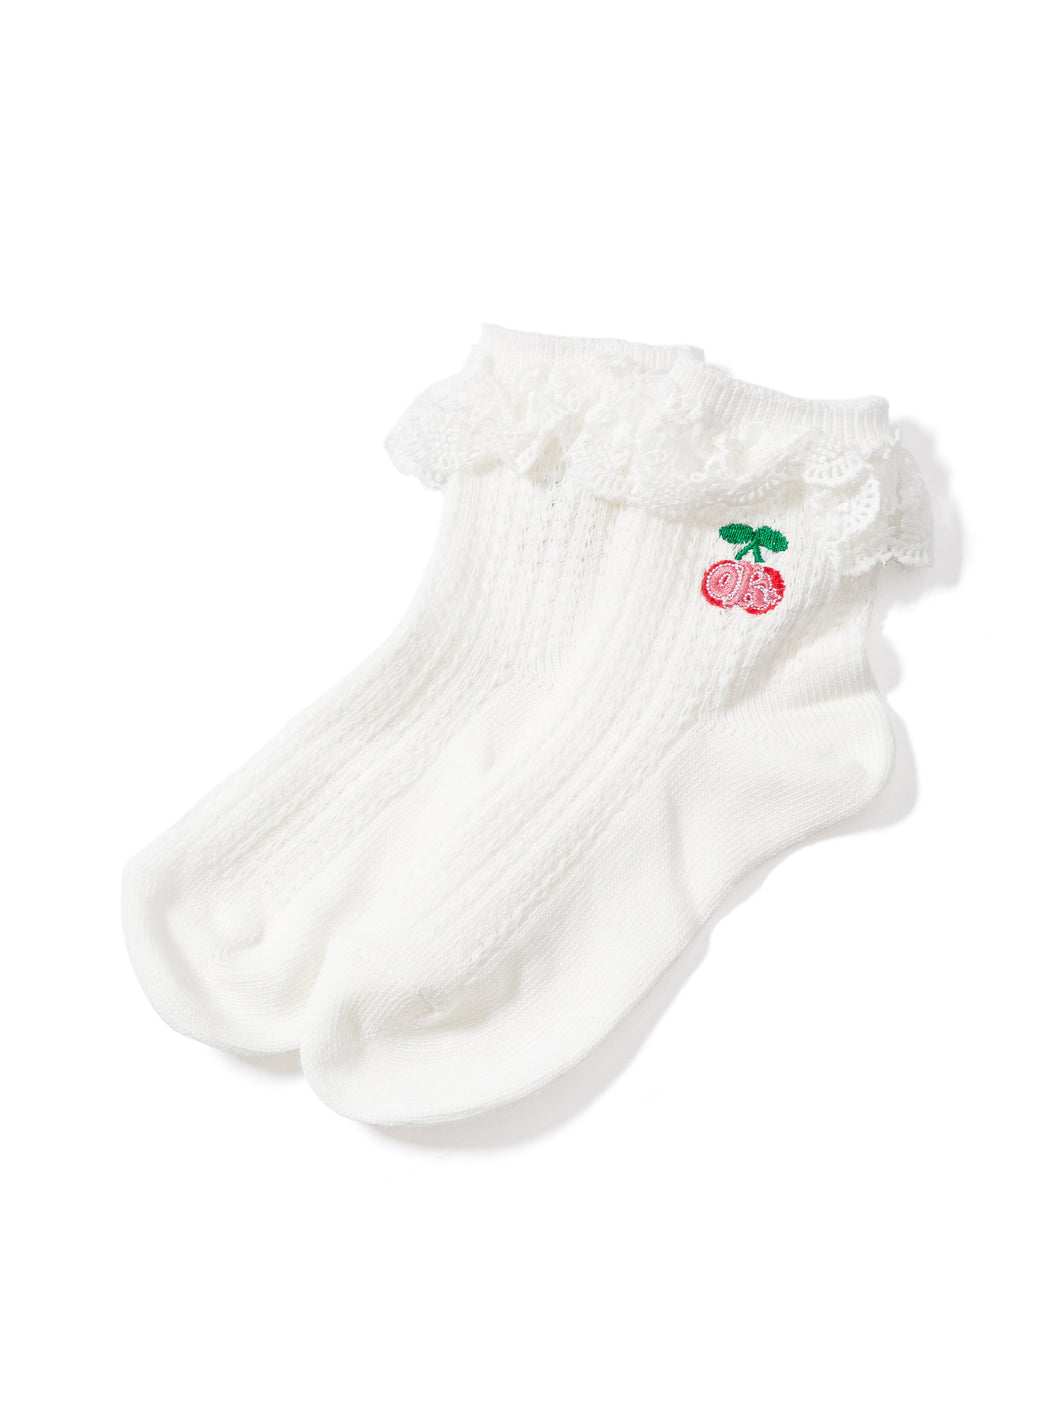 Socks Cherry With Lace